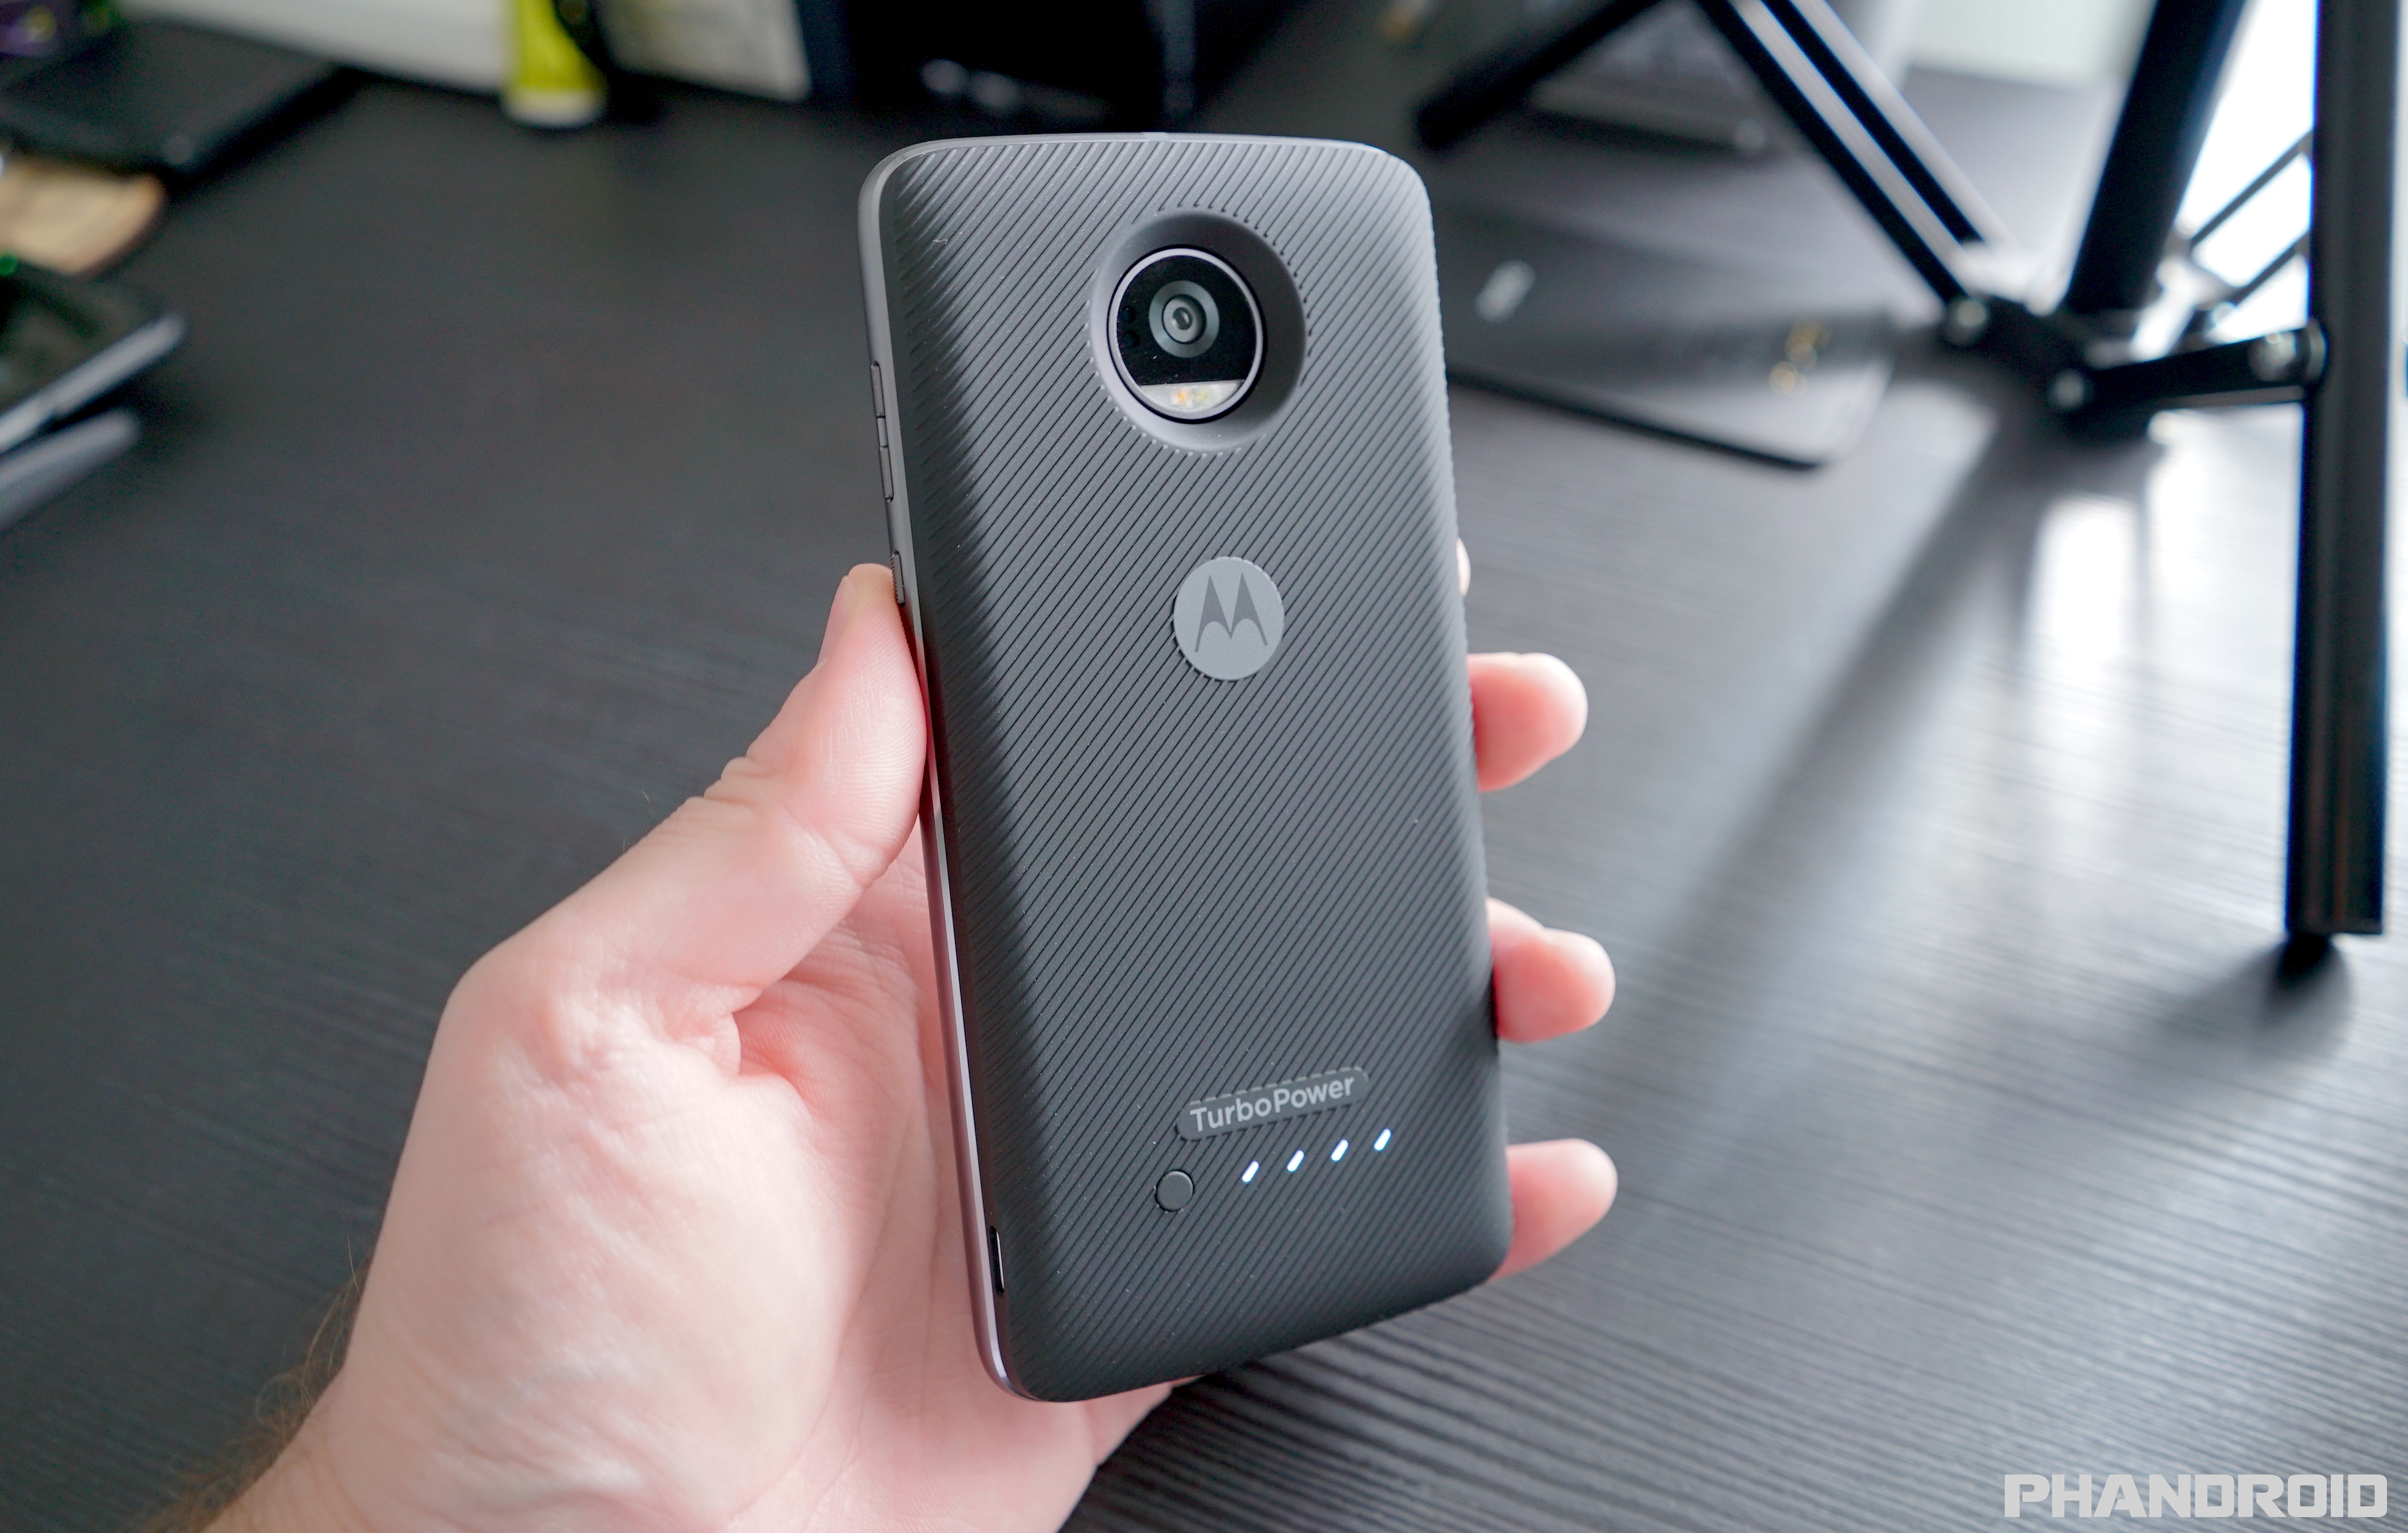 b03e536fe8eca5 For those that truly value battery life above all else, the only option is  to become a slave to Motorola's Moto Mods, magnetic attachments that snap  onto ...